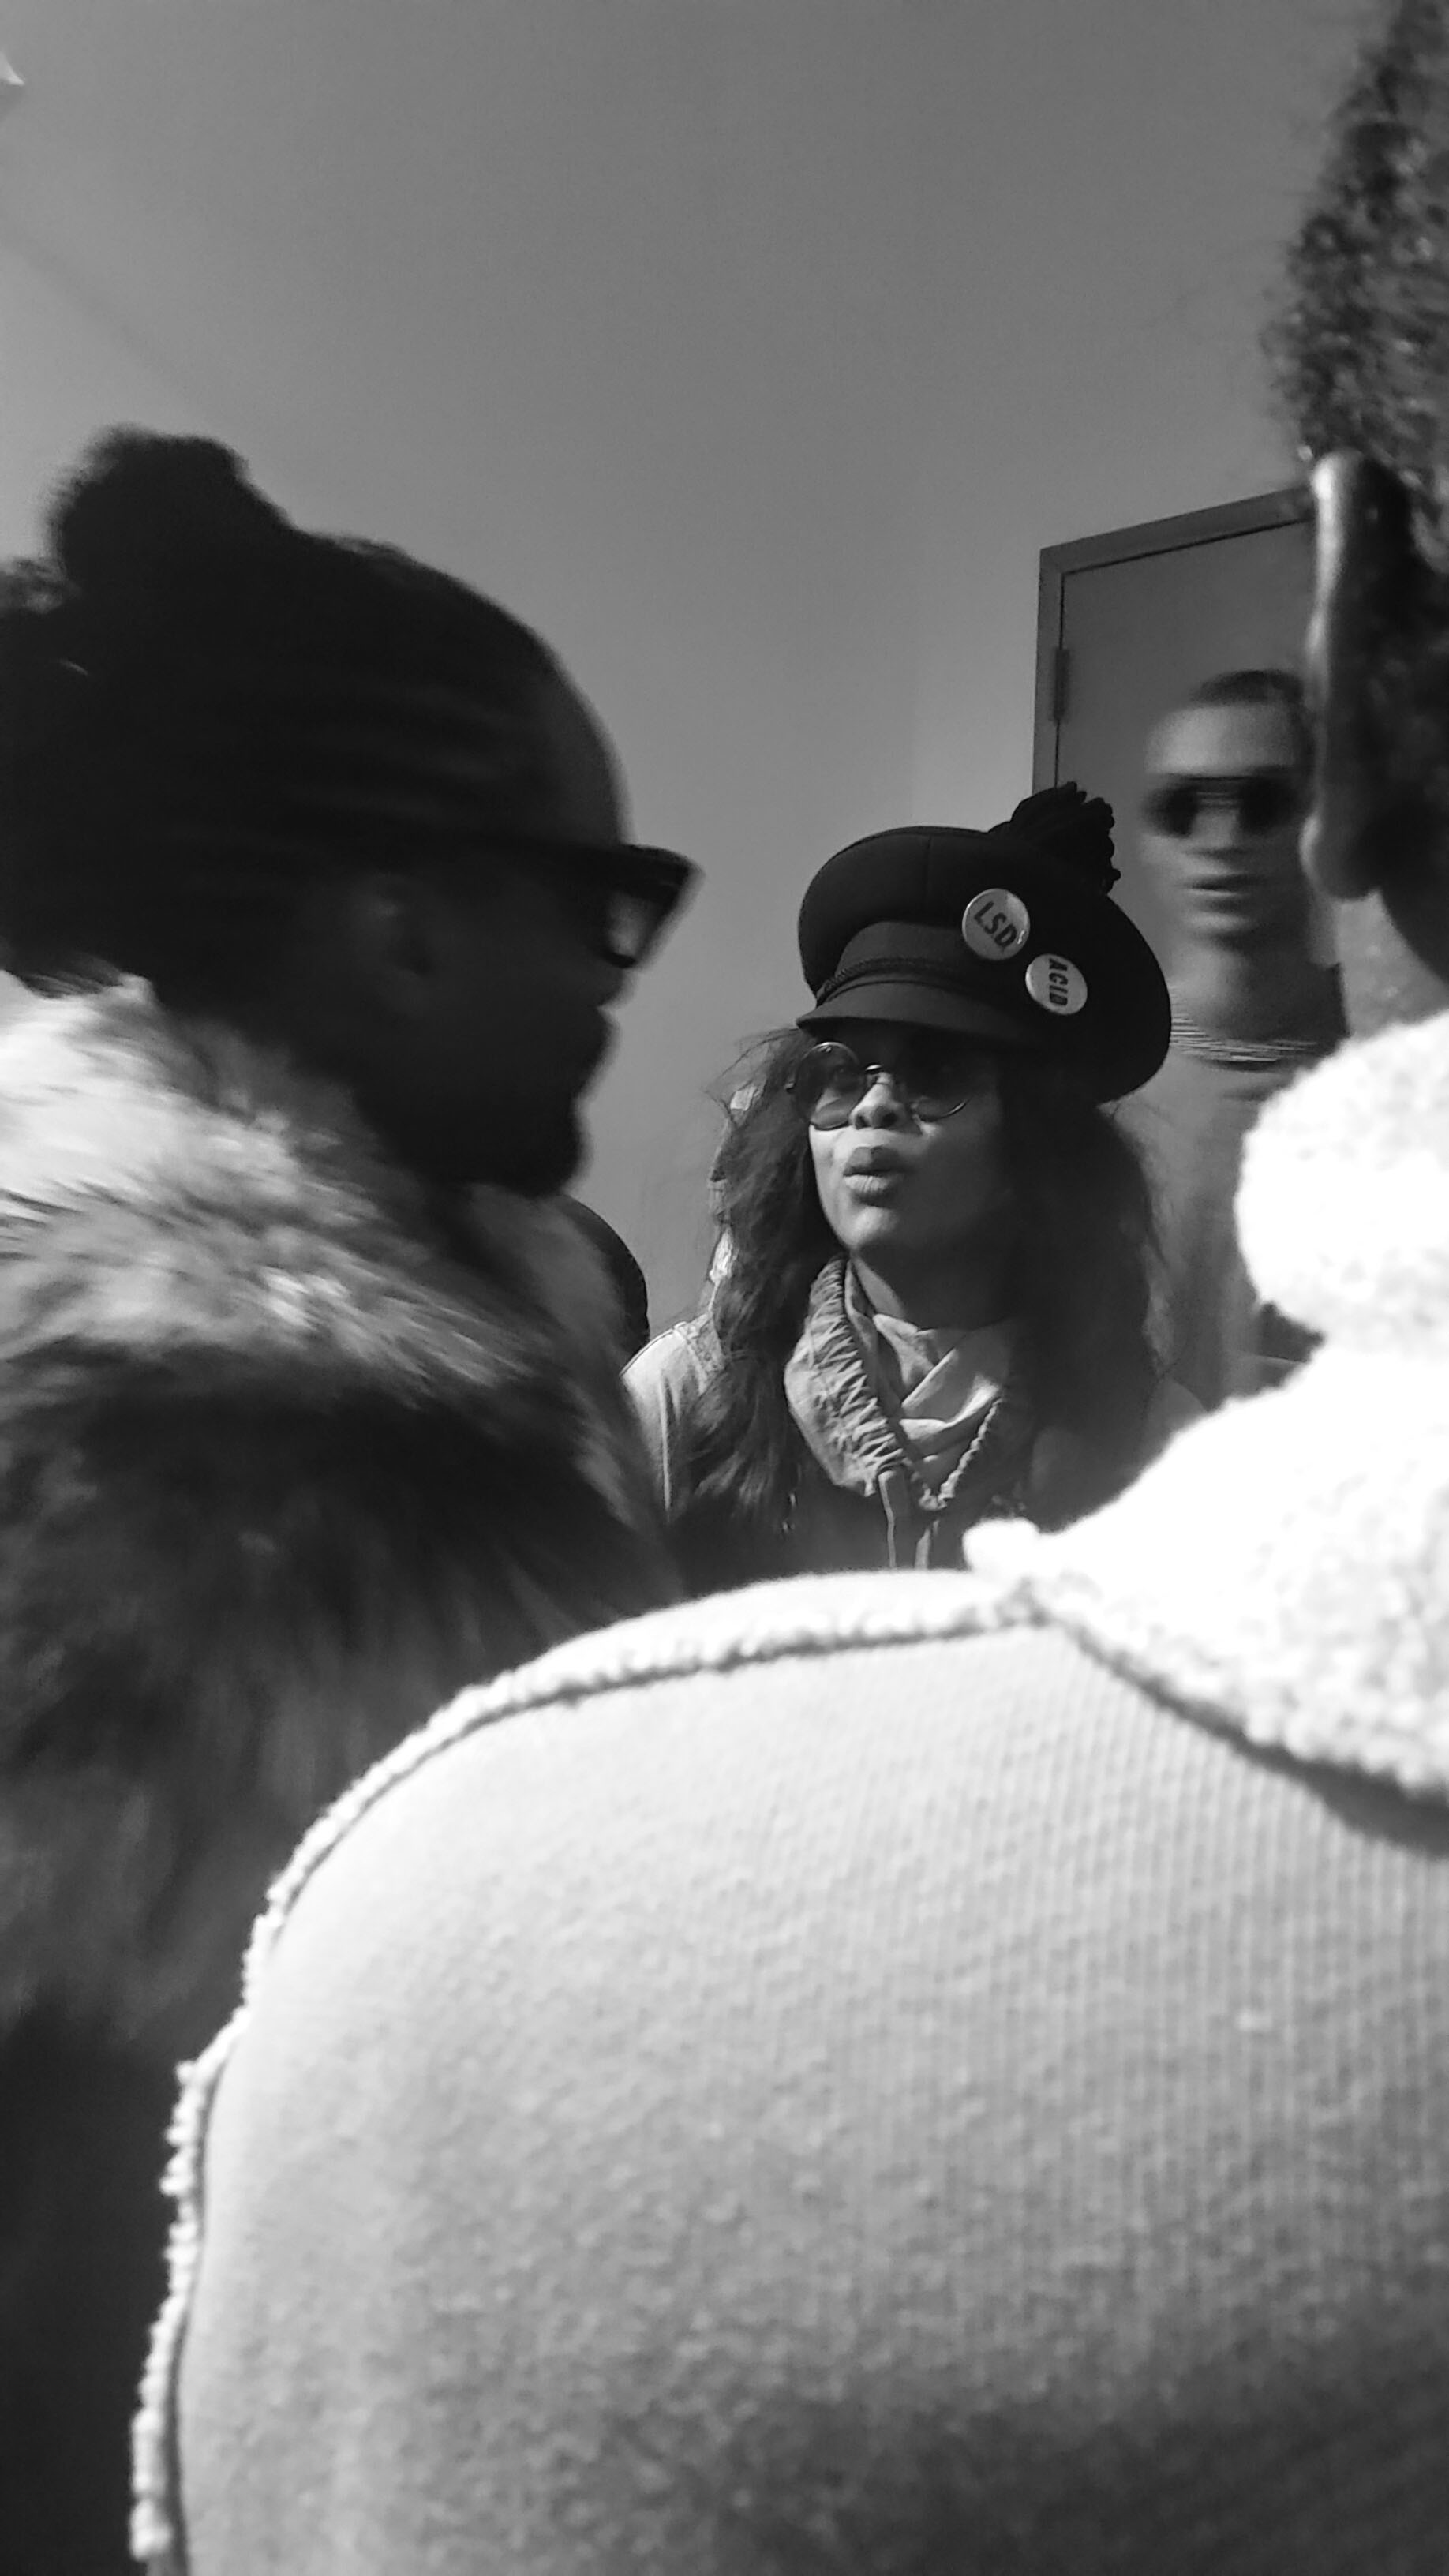 Erykah Badu talking to Wale backstage at the Pyer Moss AW16 show (credit: Kali Brown)